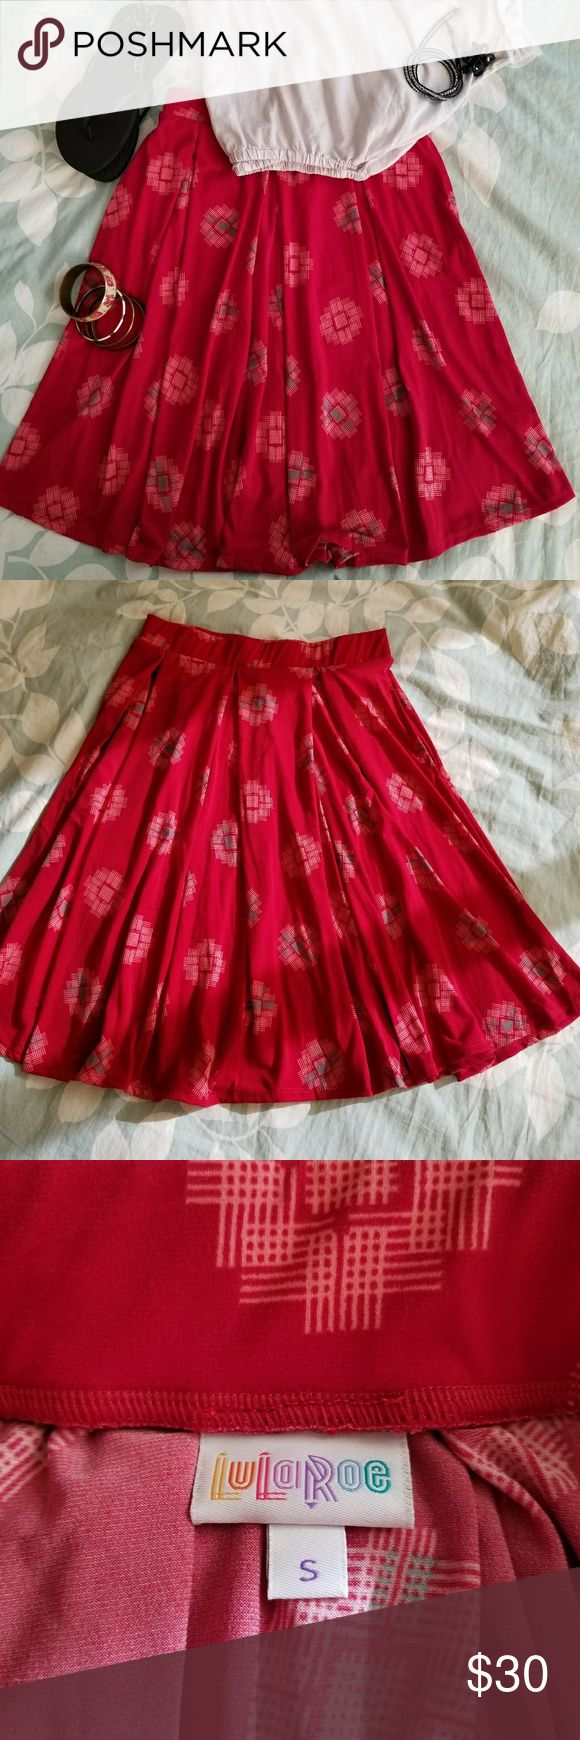 LuLaRoe Red Print Madison Skirt Soft, silky, red print LuLaRoe Madison skirt in EUC, perfect condition with no flaws or defects. I love the pockets on this one! Deep enough to carry your keys and a smart phone to make your busy life a little more hands-free. This bright versatile skirt can be paired with a plain white T-shirt and sandals for a casual day running errands or dressed up with gold jewelry, some heels, and a little black cardigan for a night out. LuLaRoe Skirts Midi